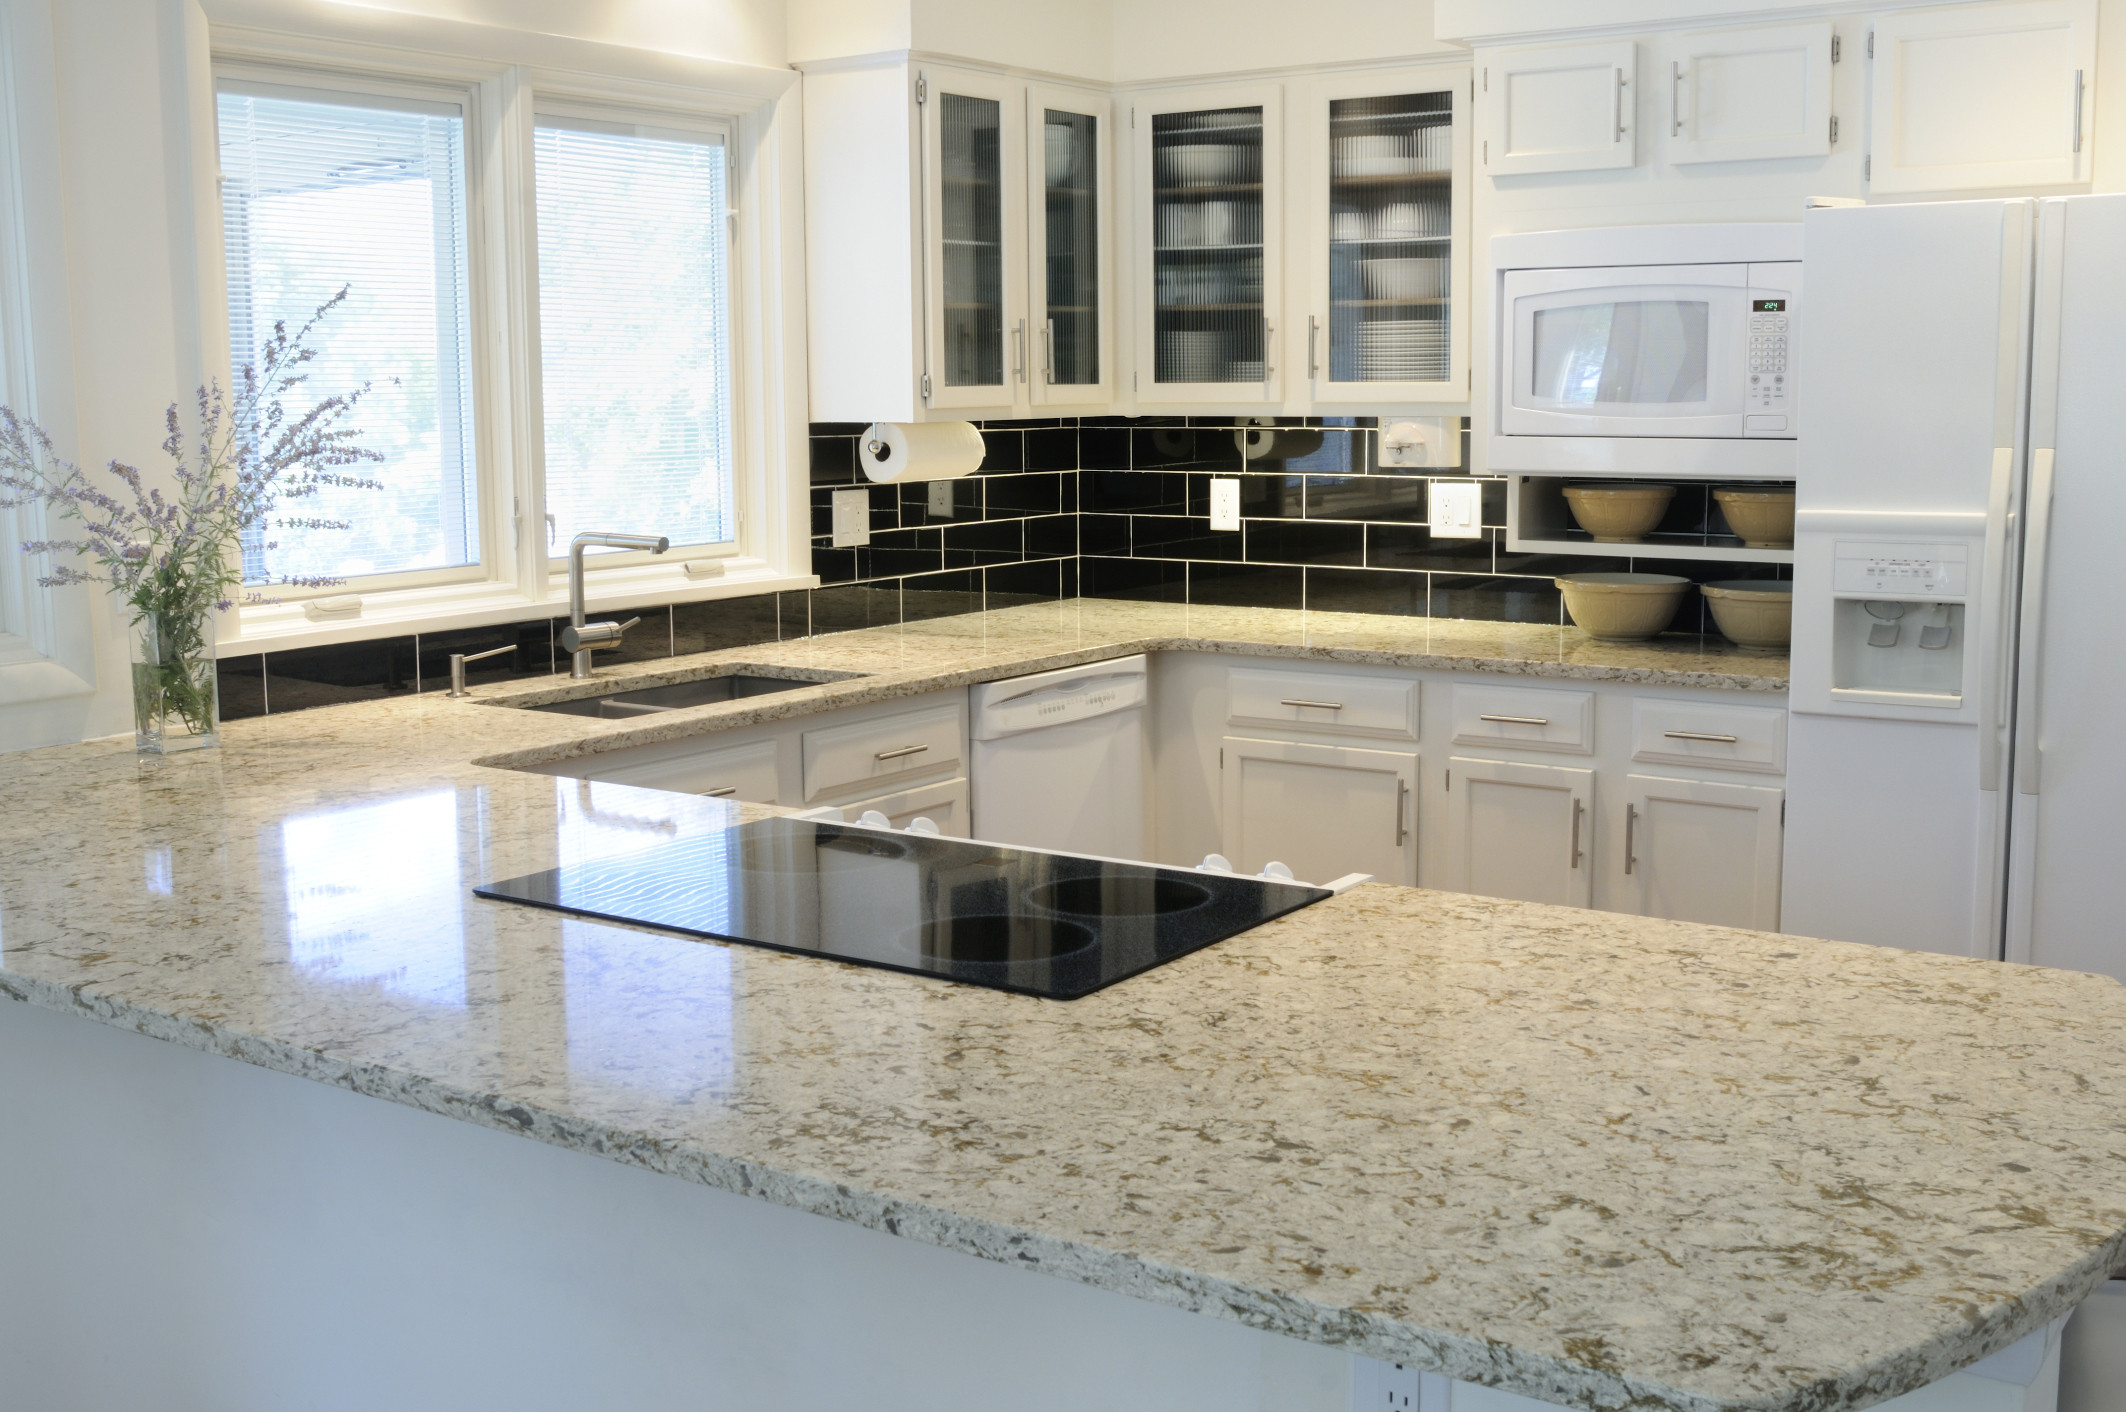 granite countertop alternatives n quartz kitchen countertops quartz countertop